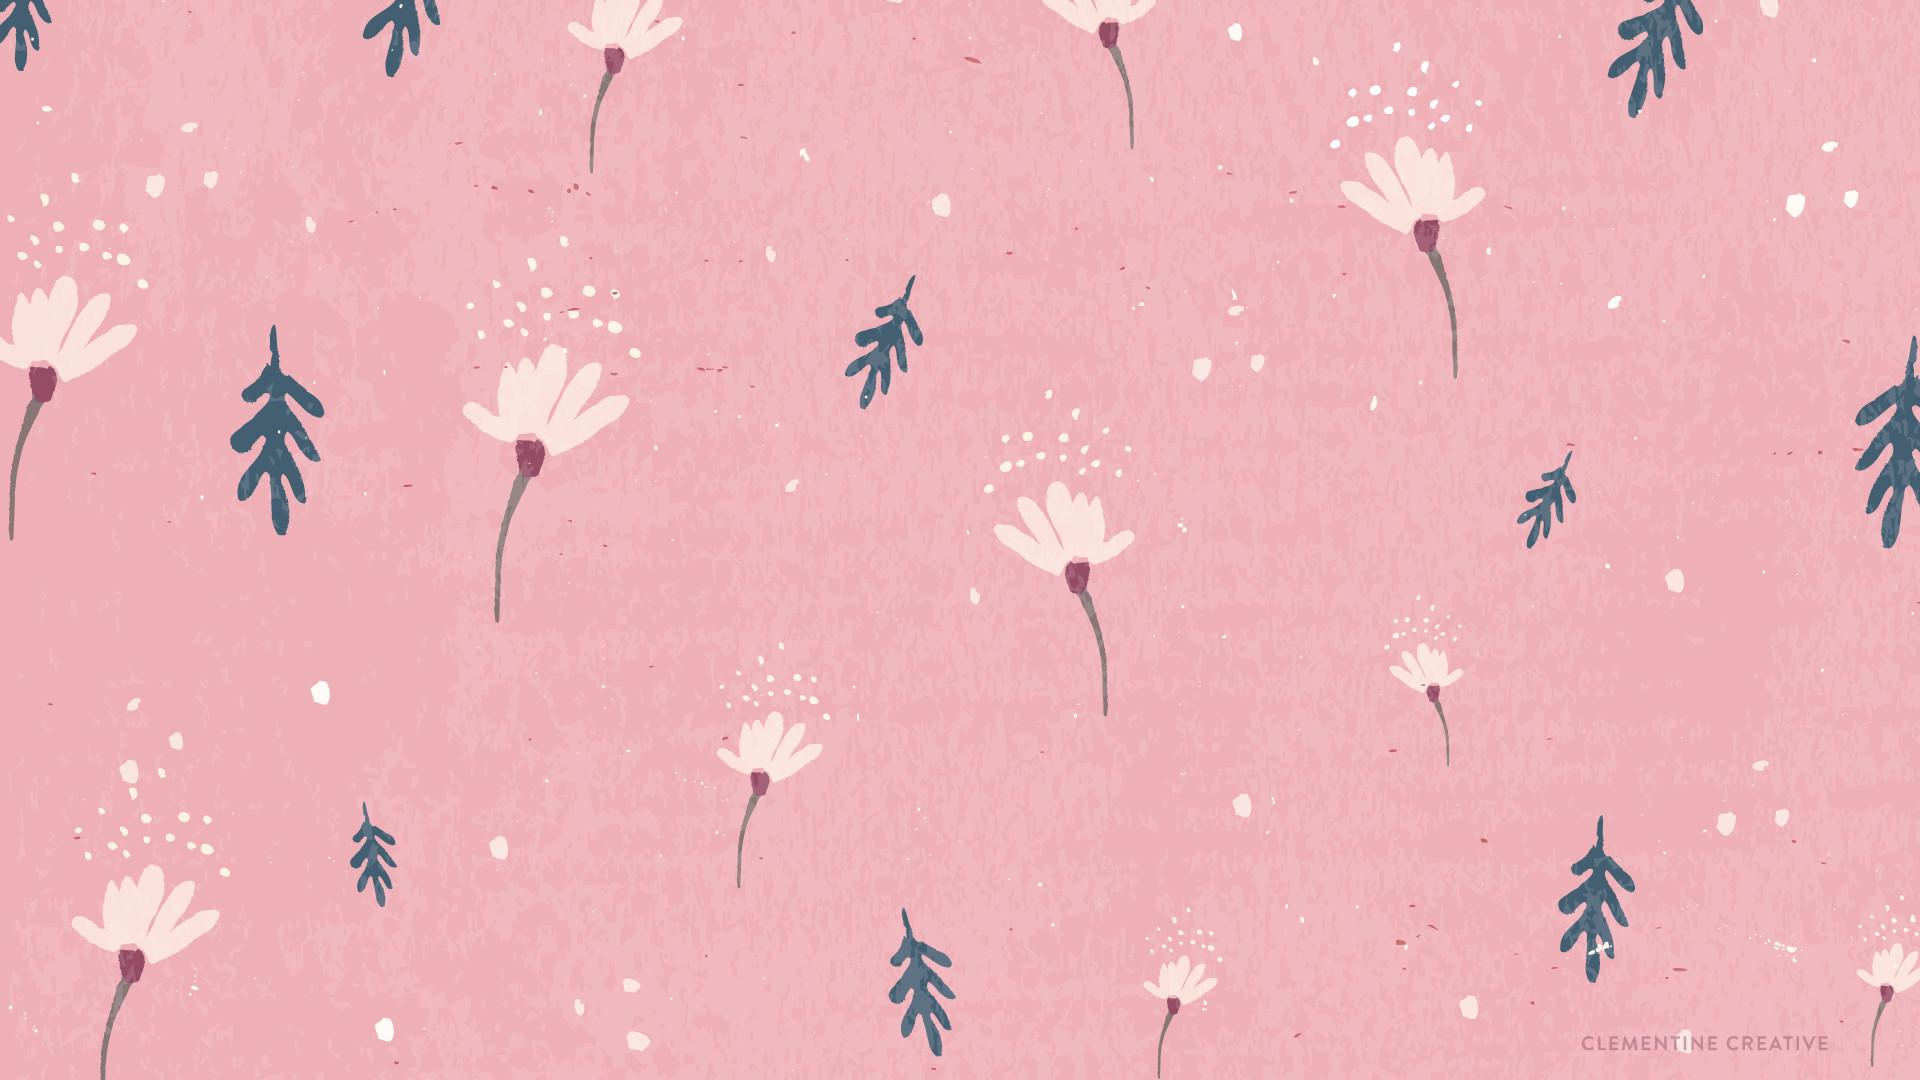 Desktop Backgrounds Wallpaper Aesthetic Pink